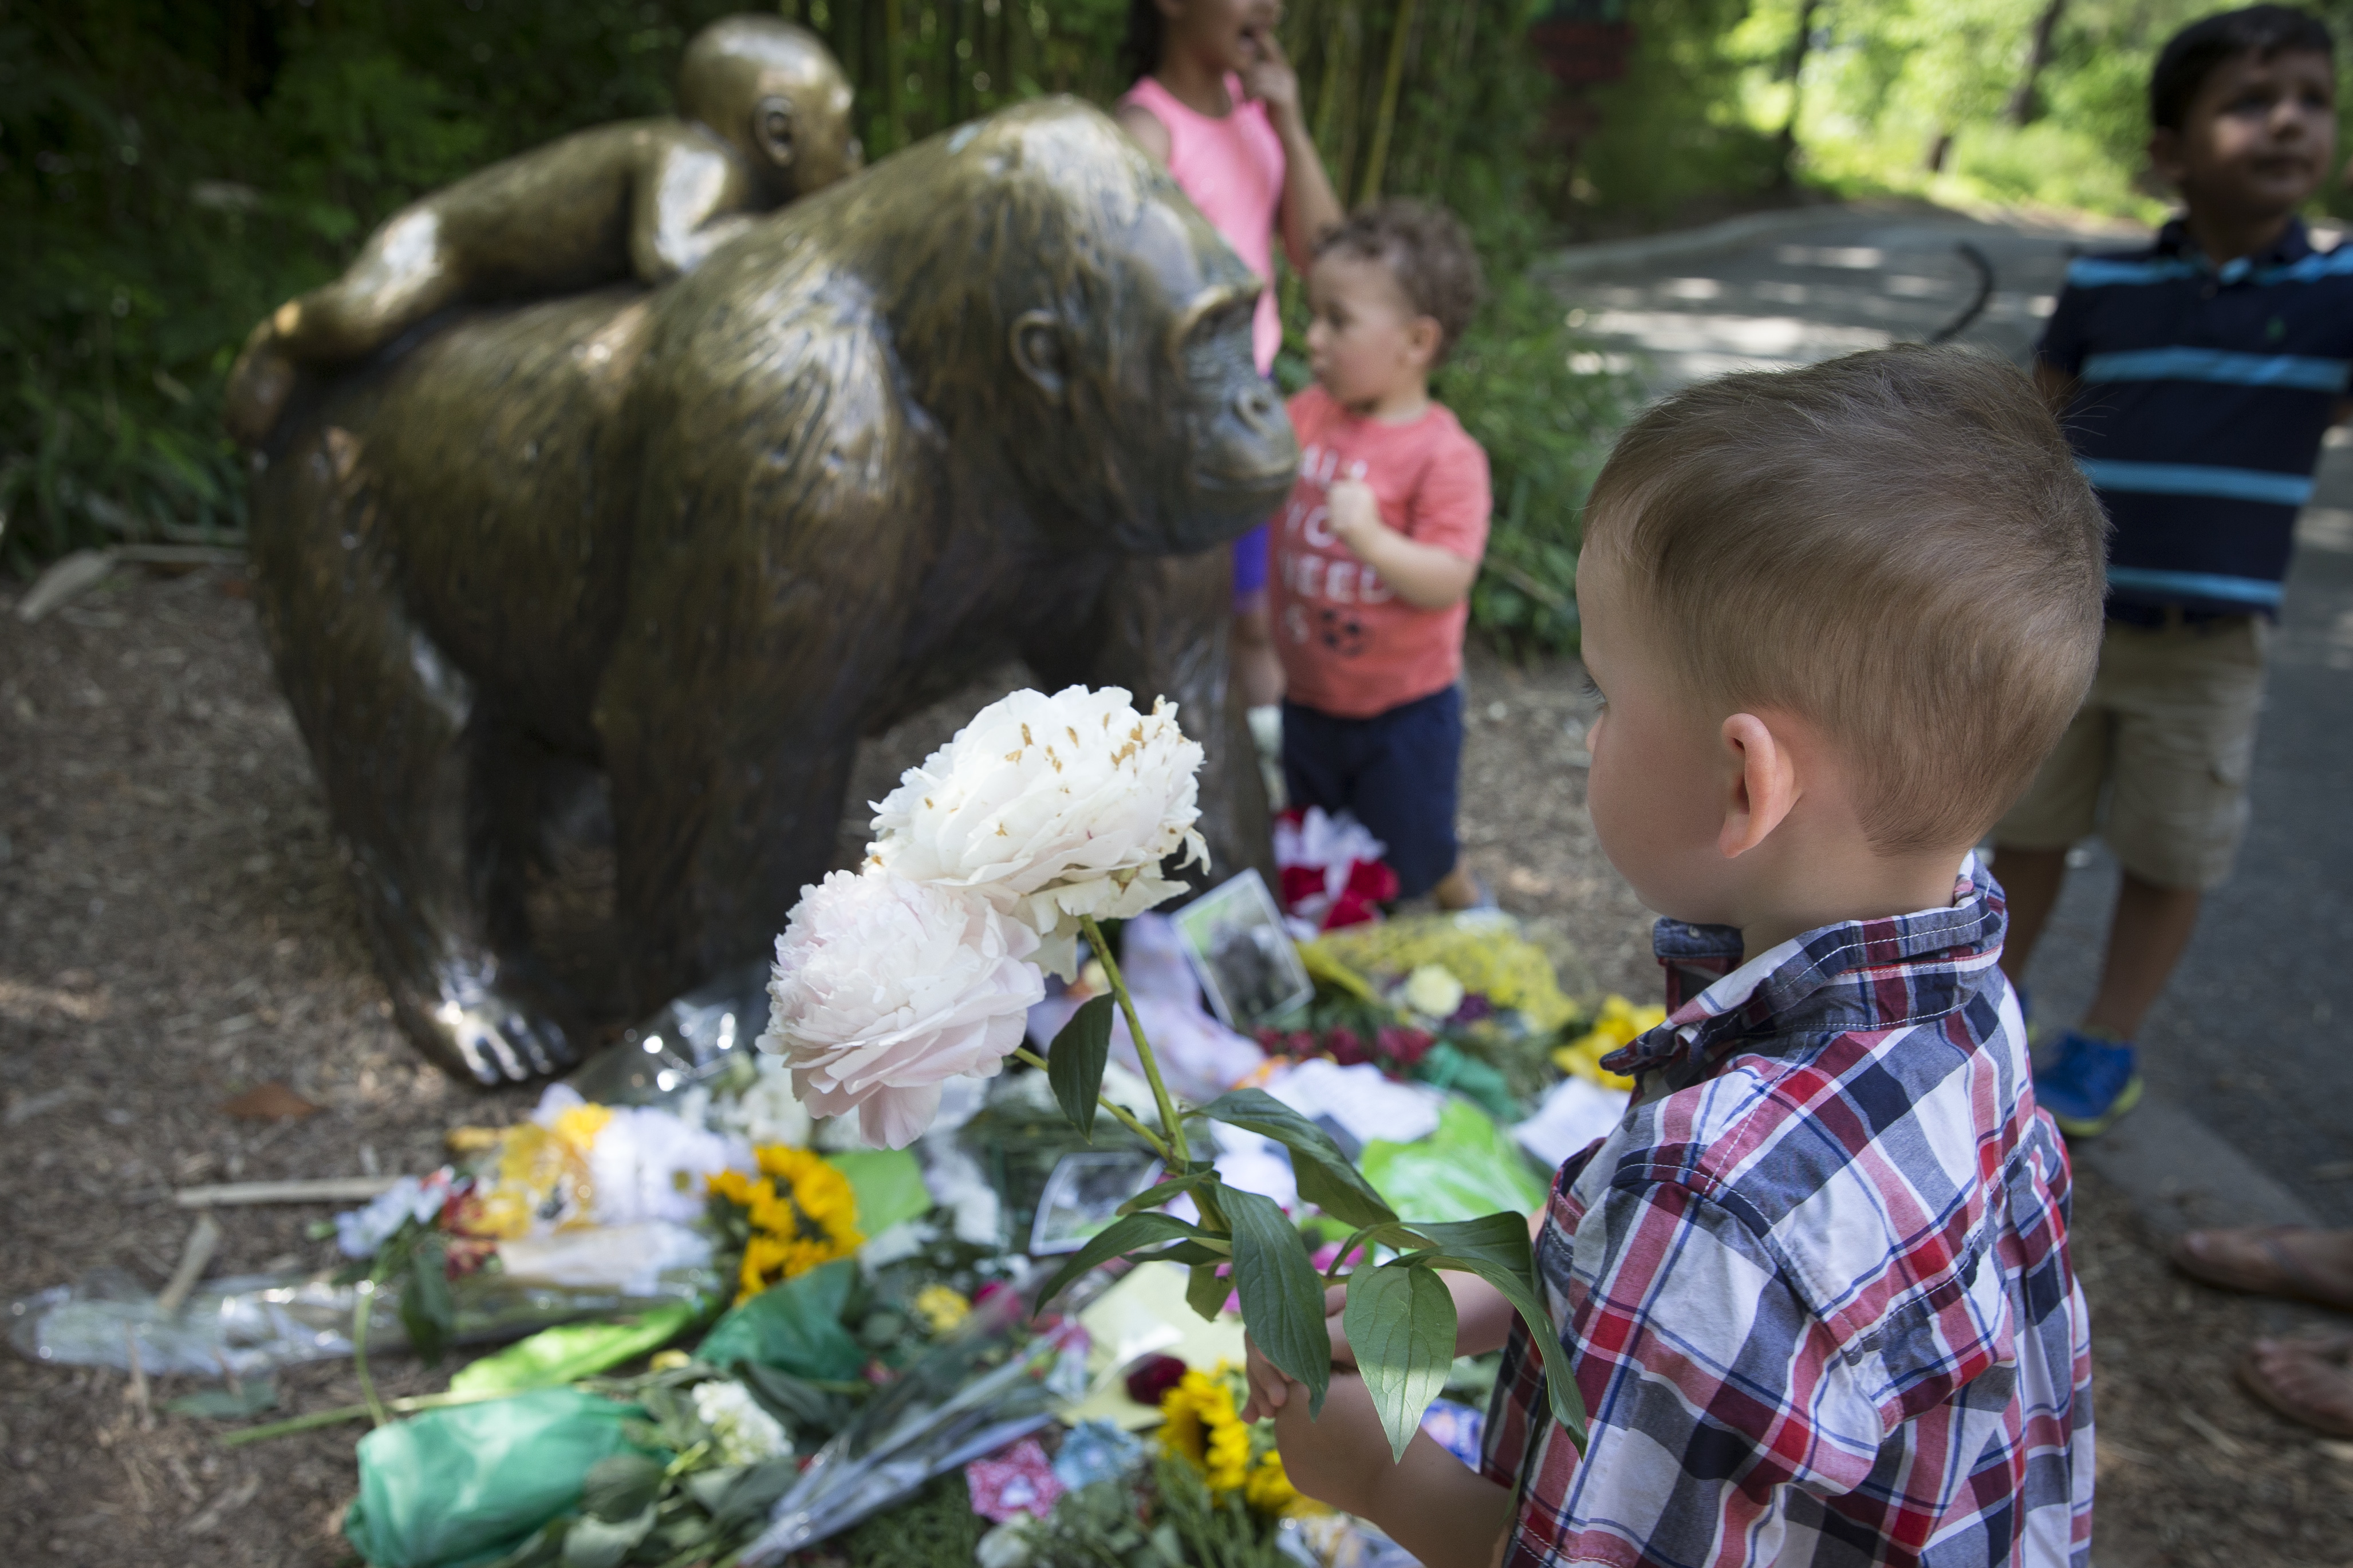 Zookeeper Writes Lengthy Piece on Gorilla and the Little Boy